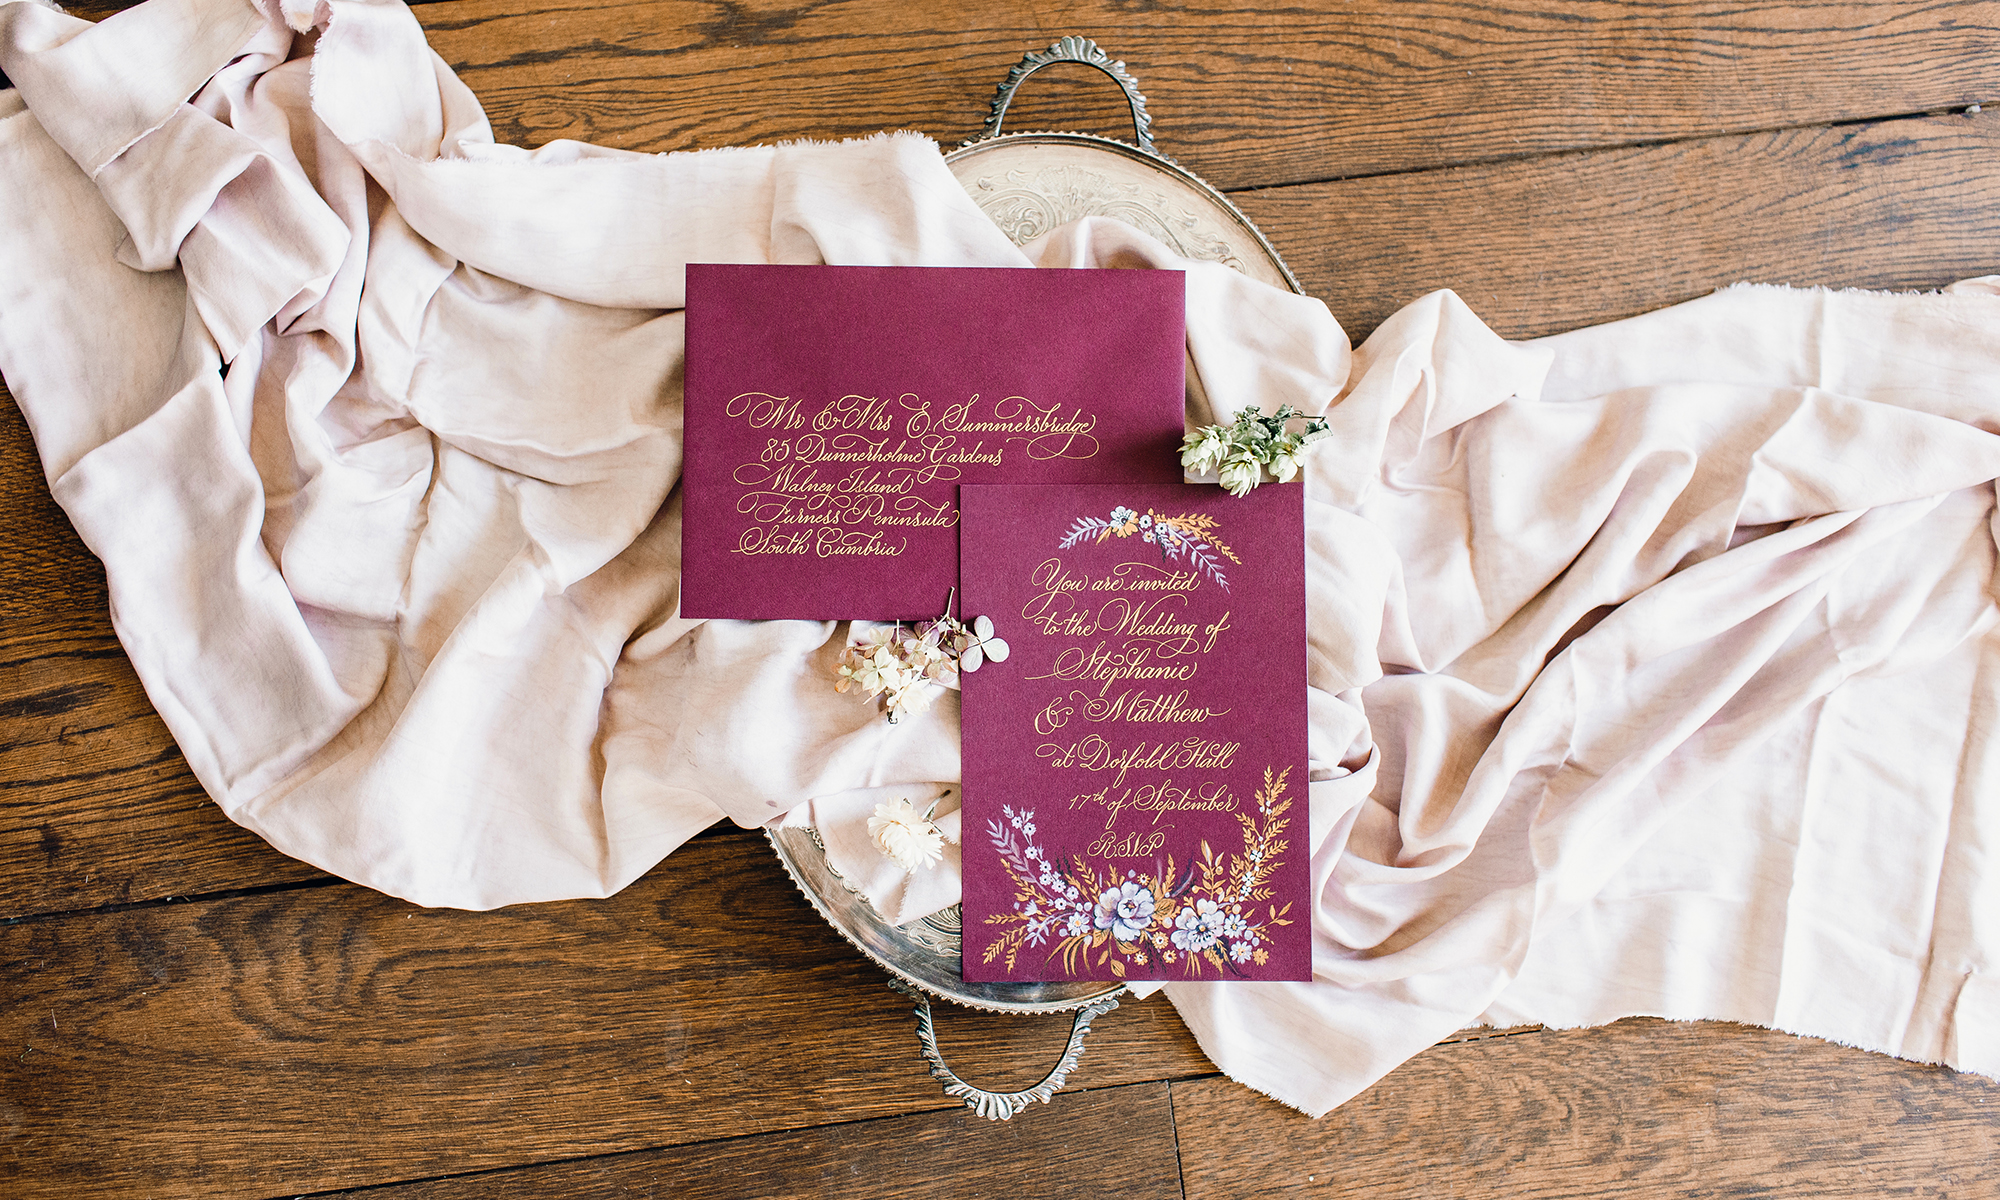 Calligraphy-for-Weddings.com